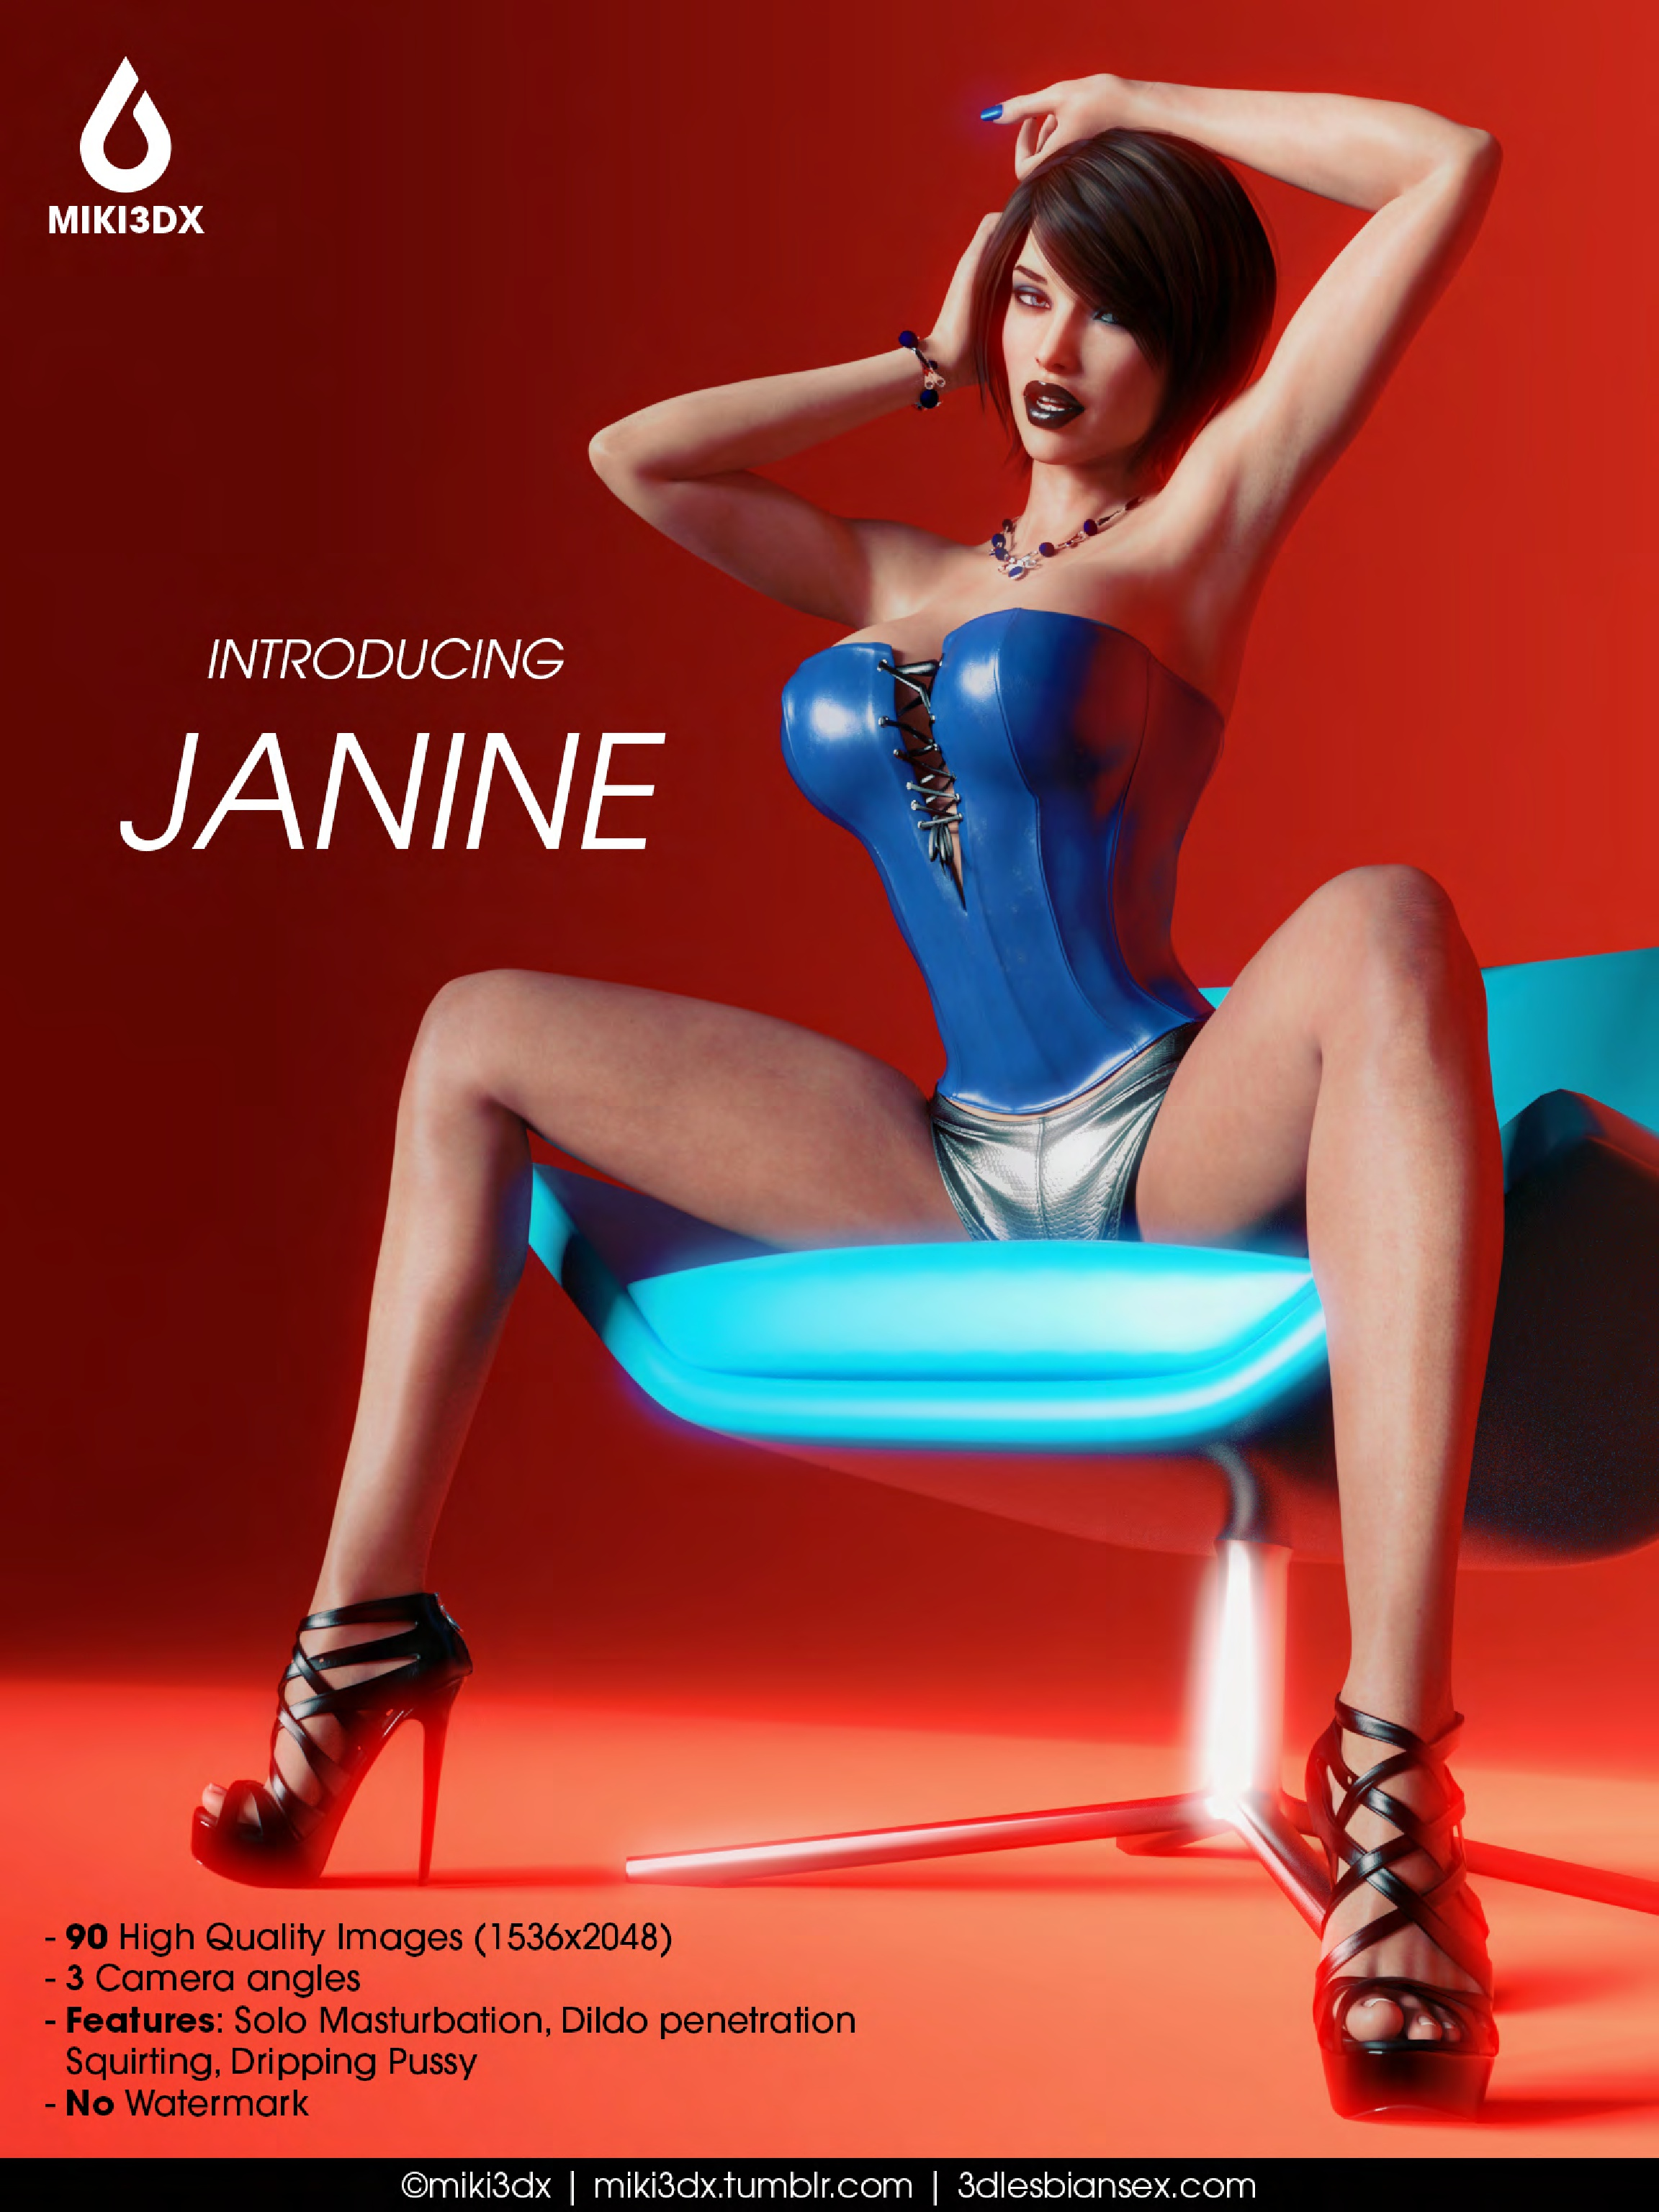 Introducing Janine - 92 Pages